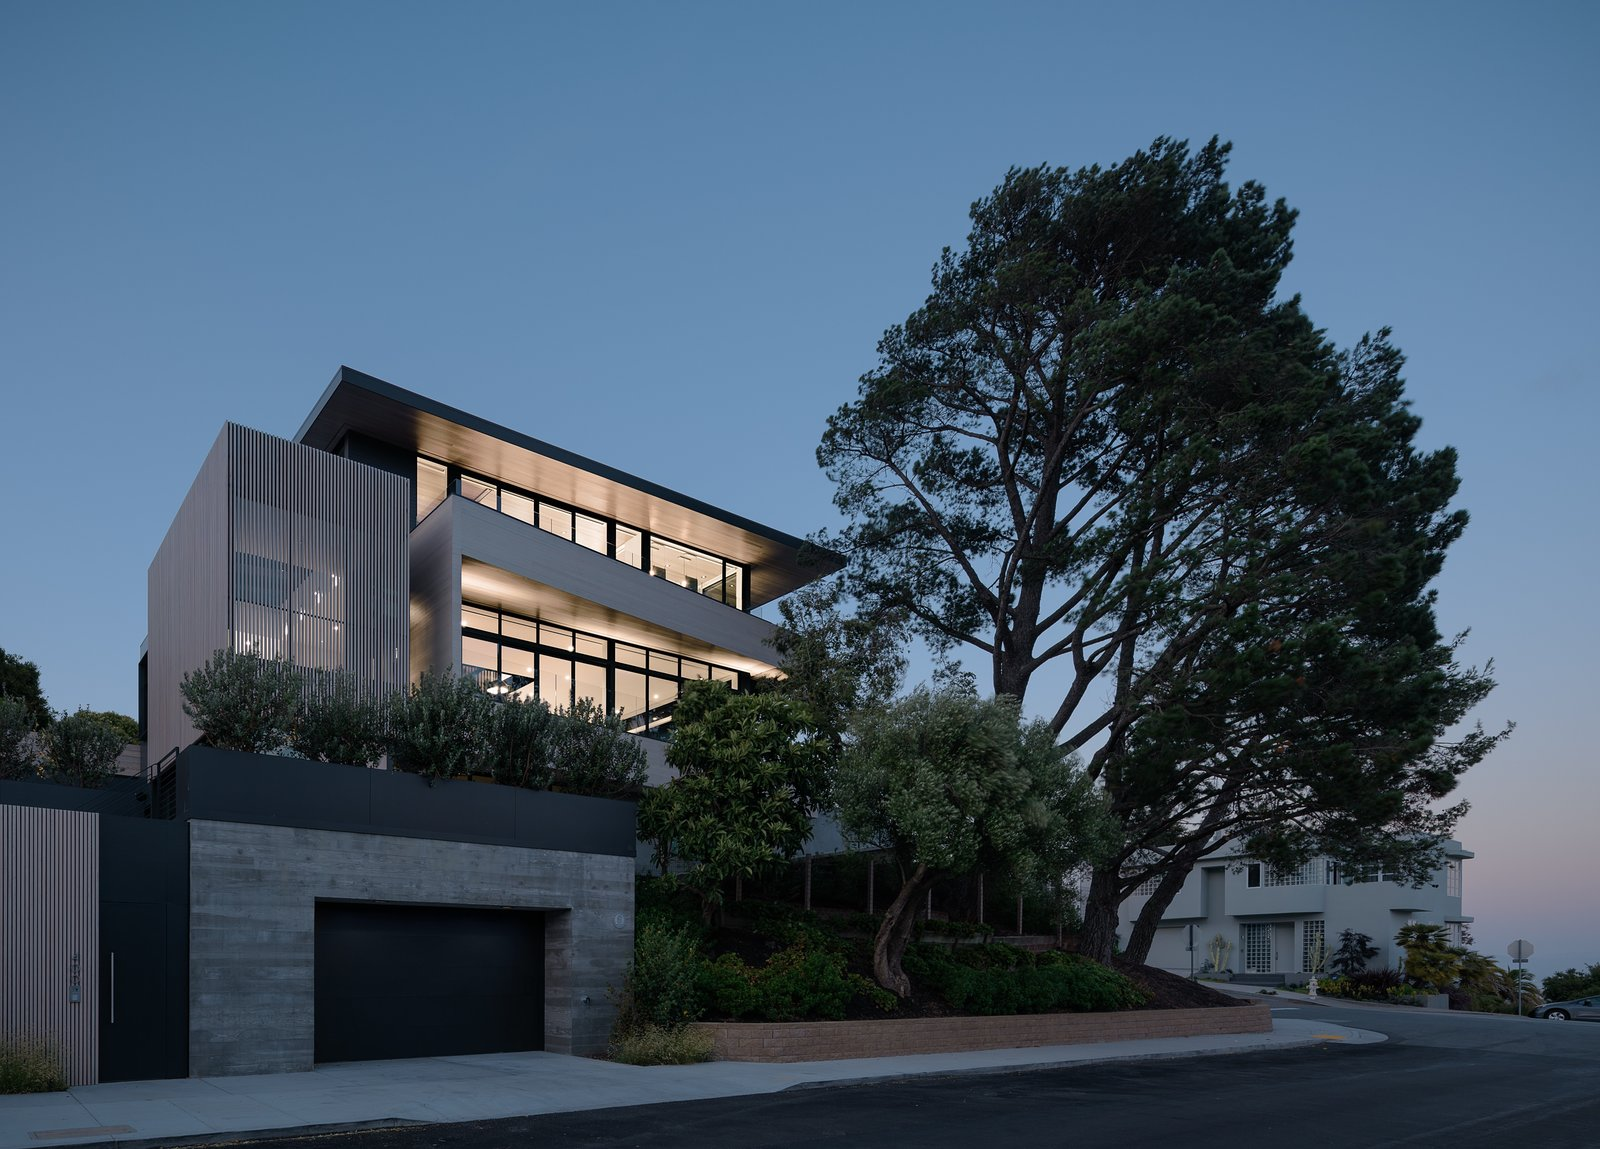 Exterior, Flat RoofLine, House Building Type, Concrete Siding Material, Wood Siding Material, Metal Roof Material, Glass Siding Material, and Metal Siding Material Exterior at Dusk  Photos from Dolores Heights Residence I